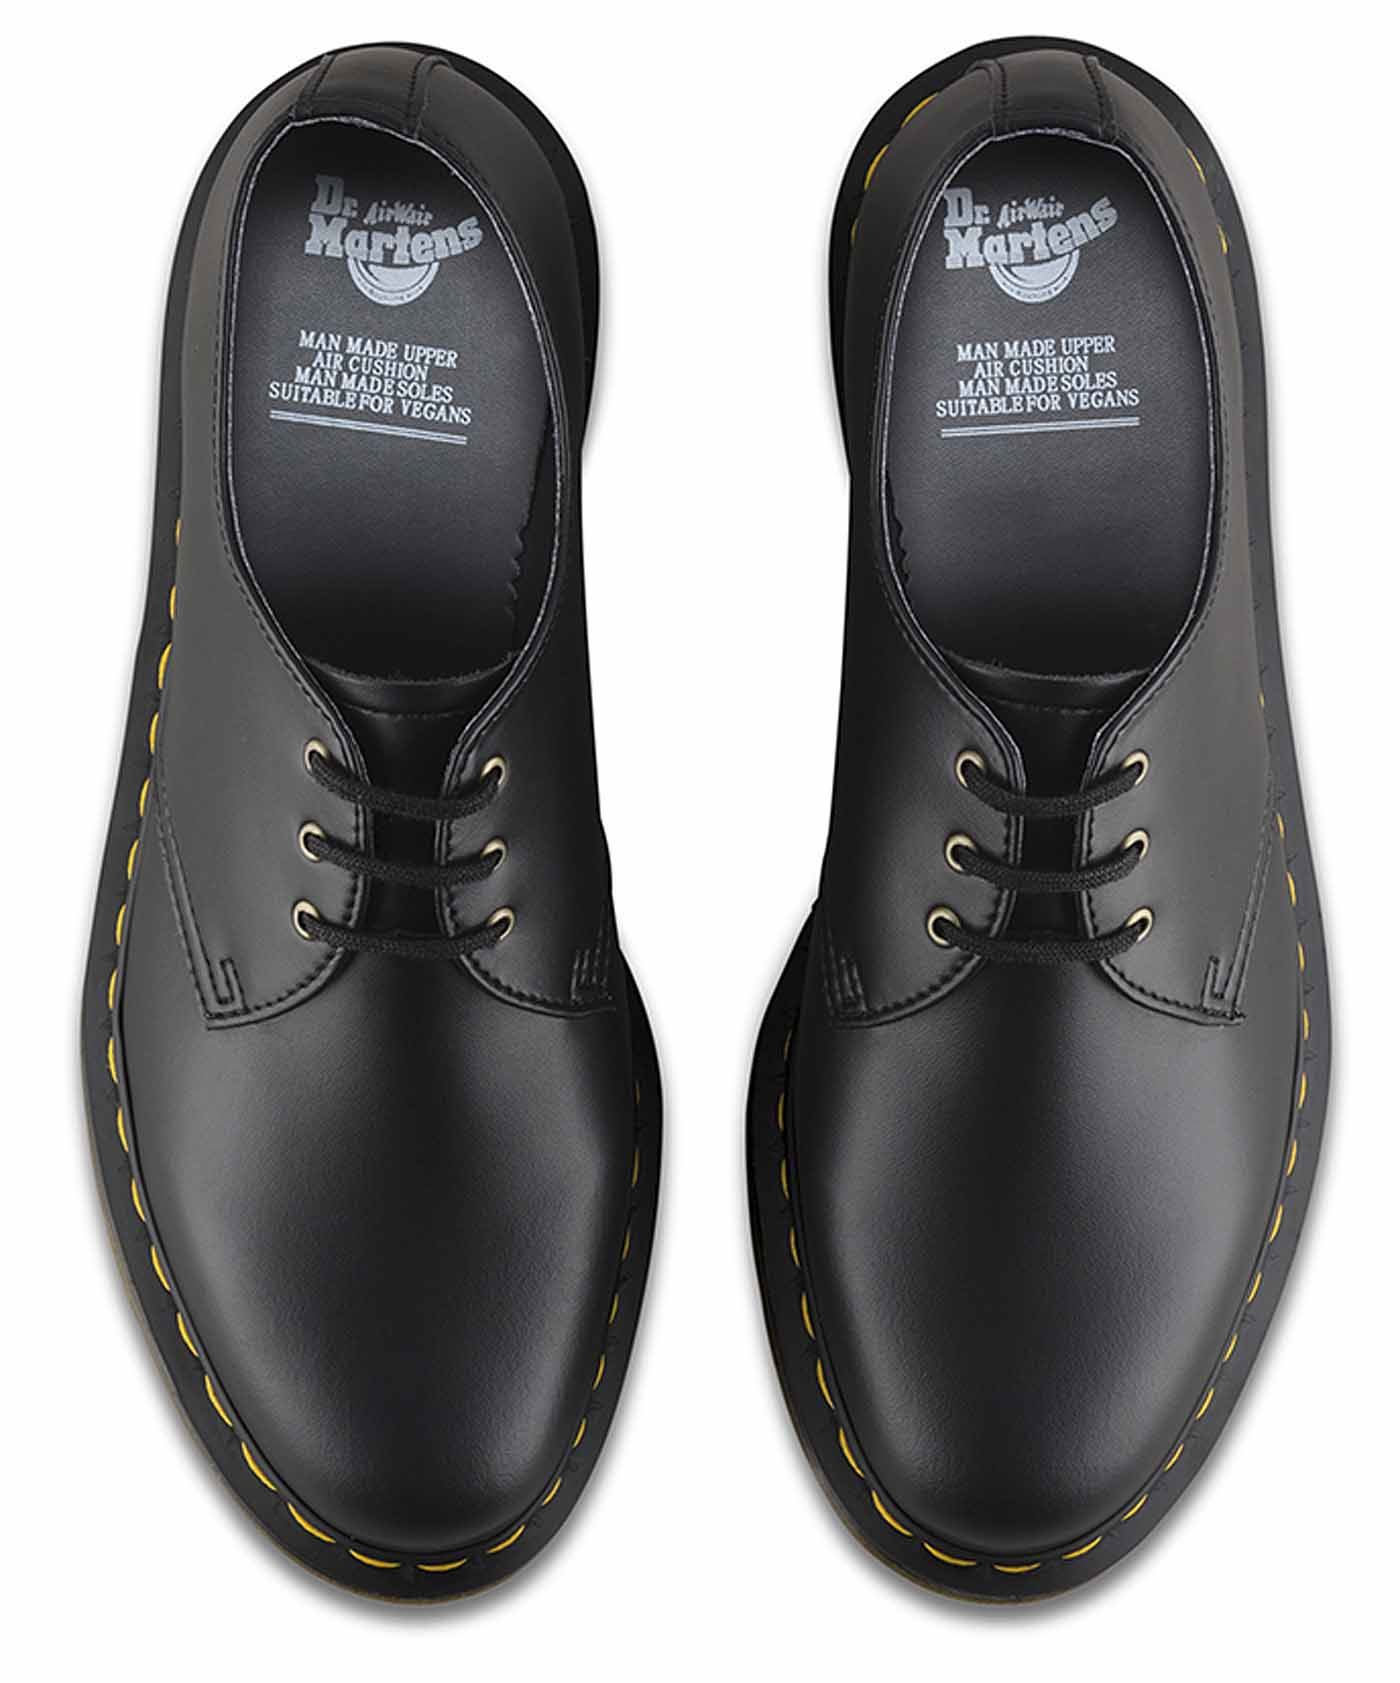 Dr Martens 1461 Vegan Schuhes 3 Eye Vegetarian Casual Schuhes Vegan 8364ac